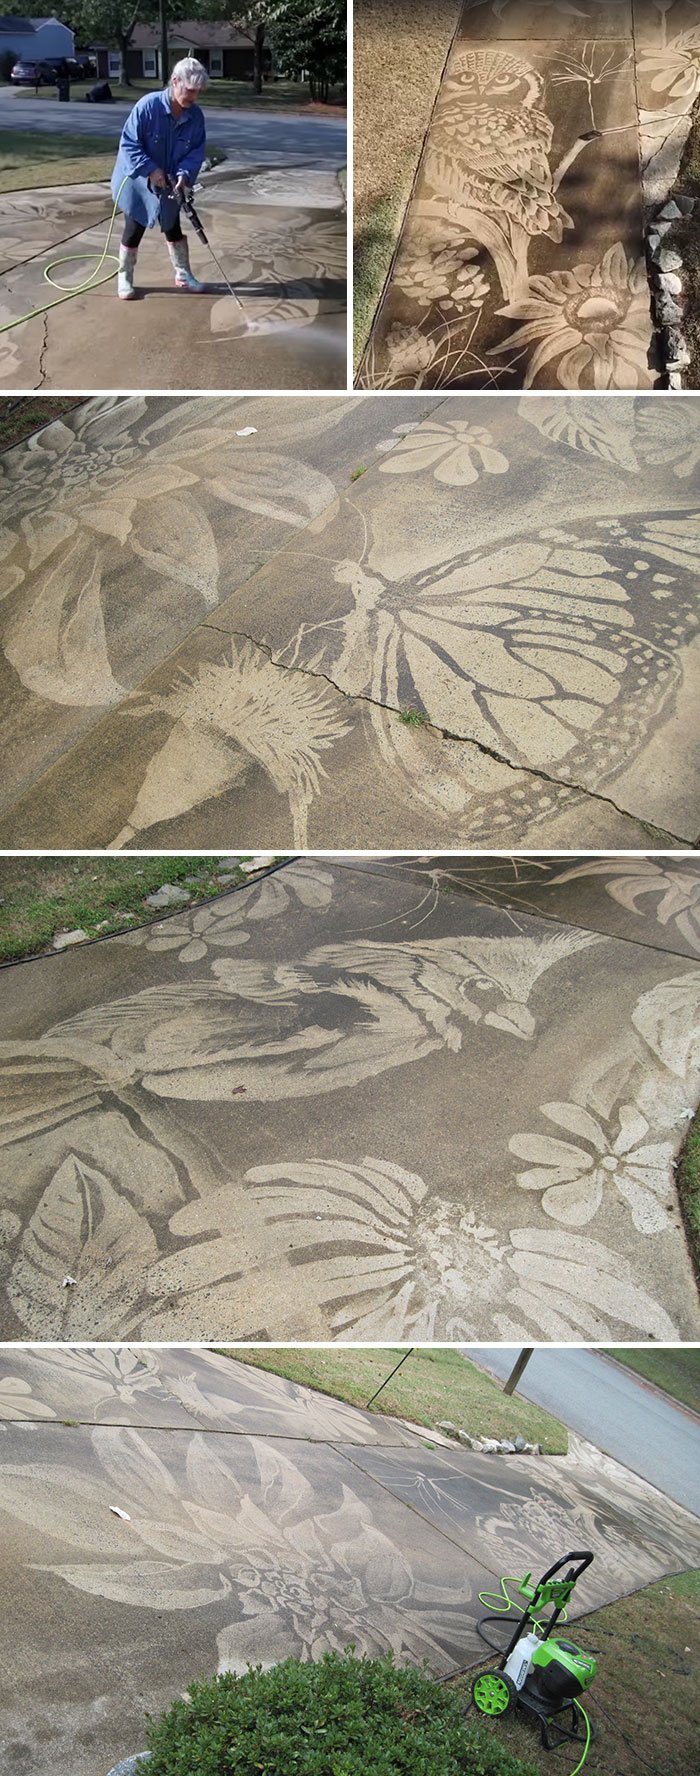 This Woman Uses The Power Washer She Got As A Birthday Gift To Unleash Her Creative Potential